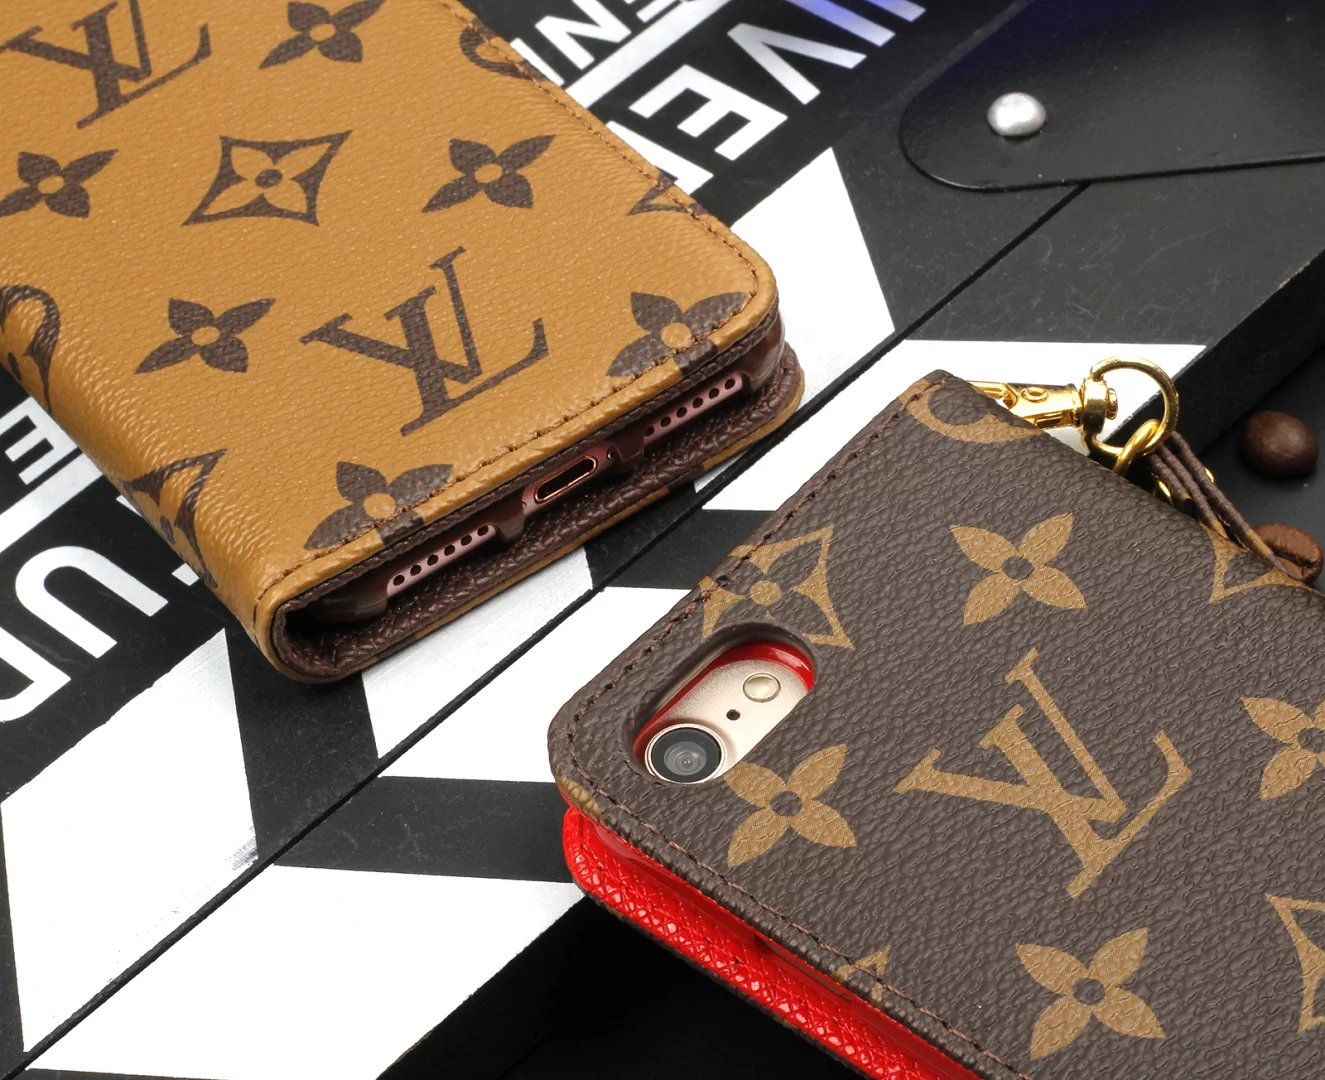 individuelle iphone hülle iphone hülle gestalten Louis Vuitton iphone6 hülle handyhülle foto iphone hülle iphone 6 silikon i pohne 6 iphone 6 hülle lila individuelle handy cover iphone 6 zubehör